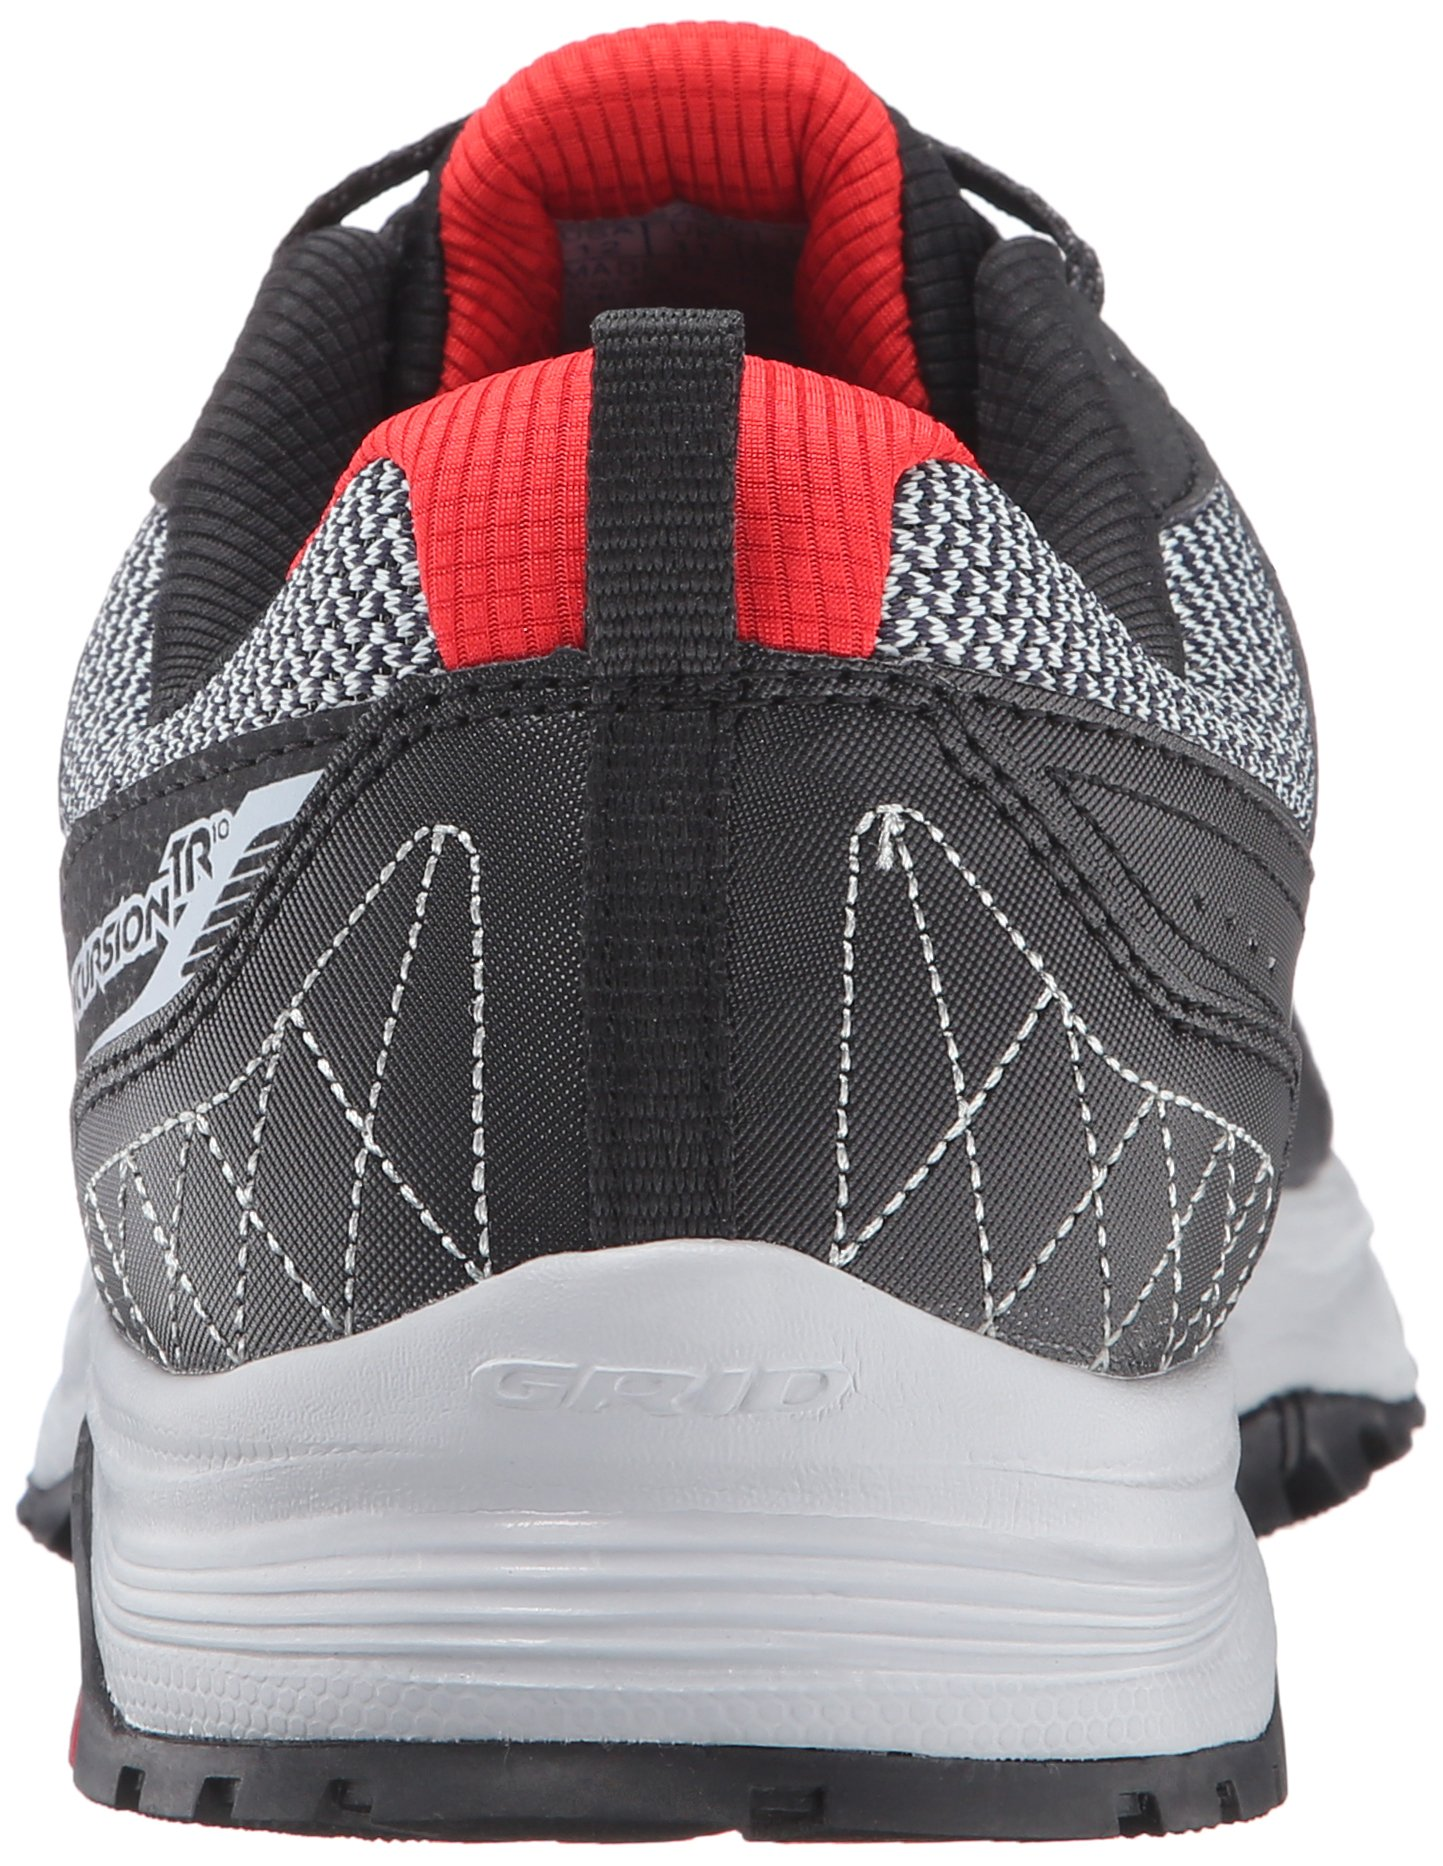 Saucony Men's Grid Excursion TR10 Running Shoe, Grey/Black/Red, 8 M US by Saucony (Image #2)